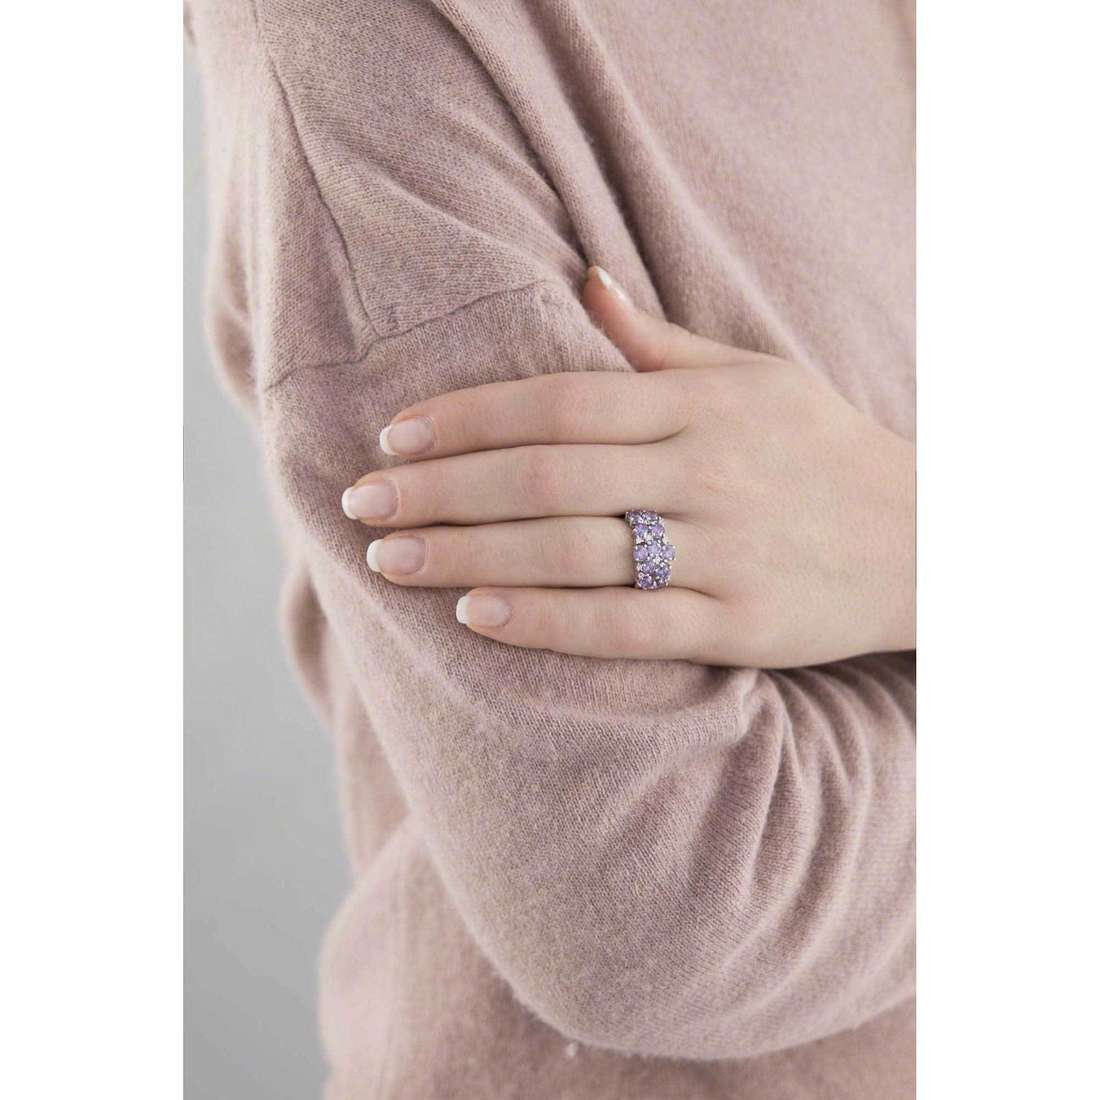 Bliss rings Felicity woman 20064026 indosso